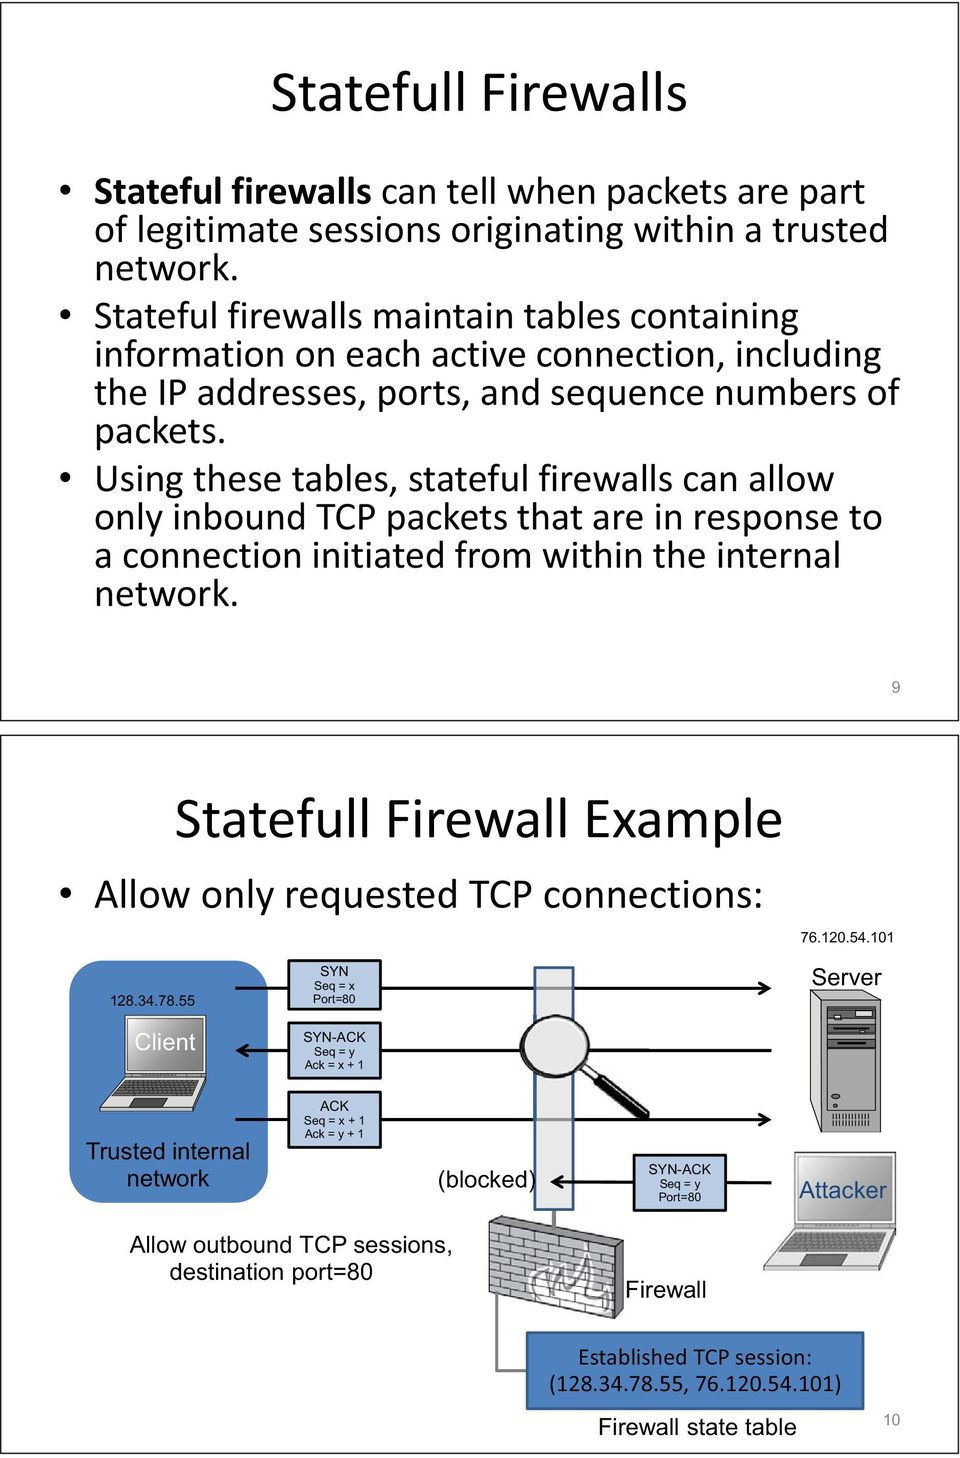 Using these tables, stateful firewalls can allow only inbound TCP packets that are in response to a connection initiated from within the internal network.